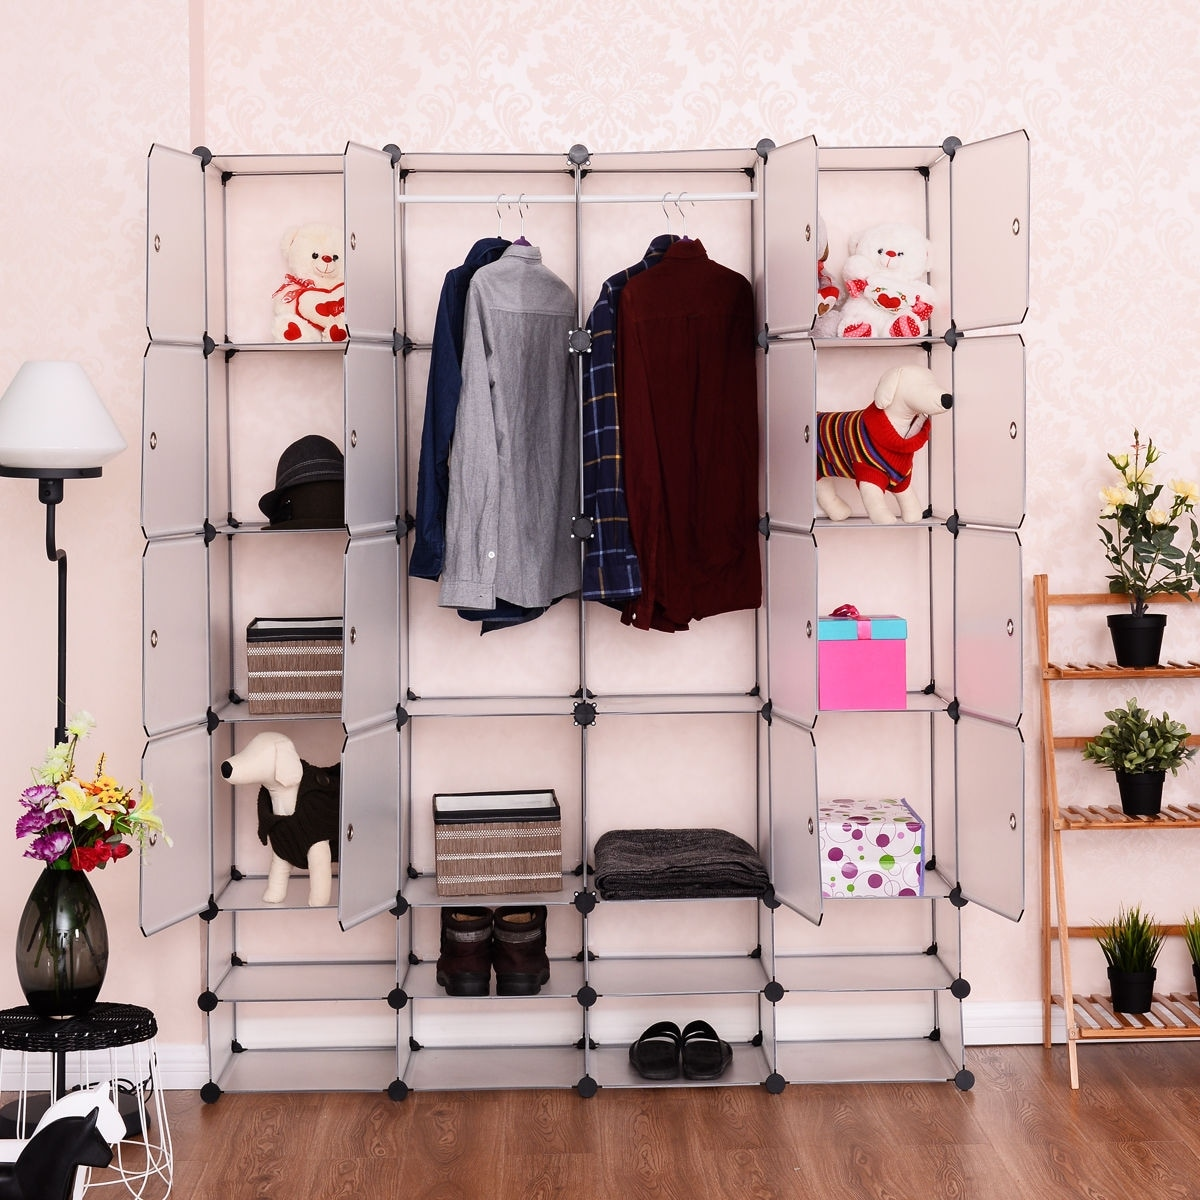 ideas storage innovative no you clothing organization clothes blog have b when closet